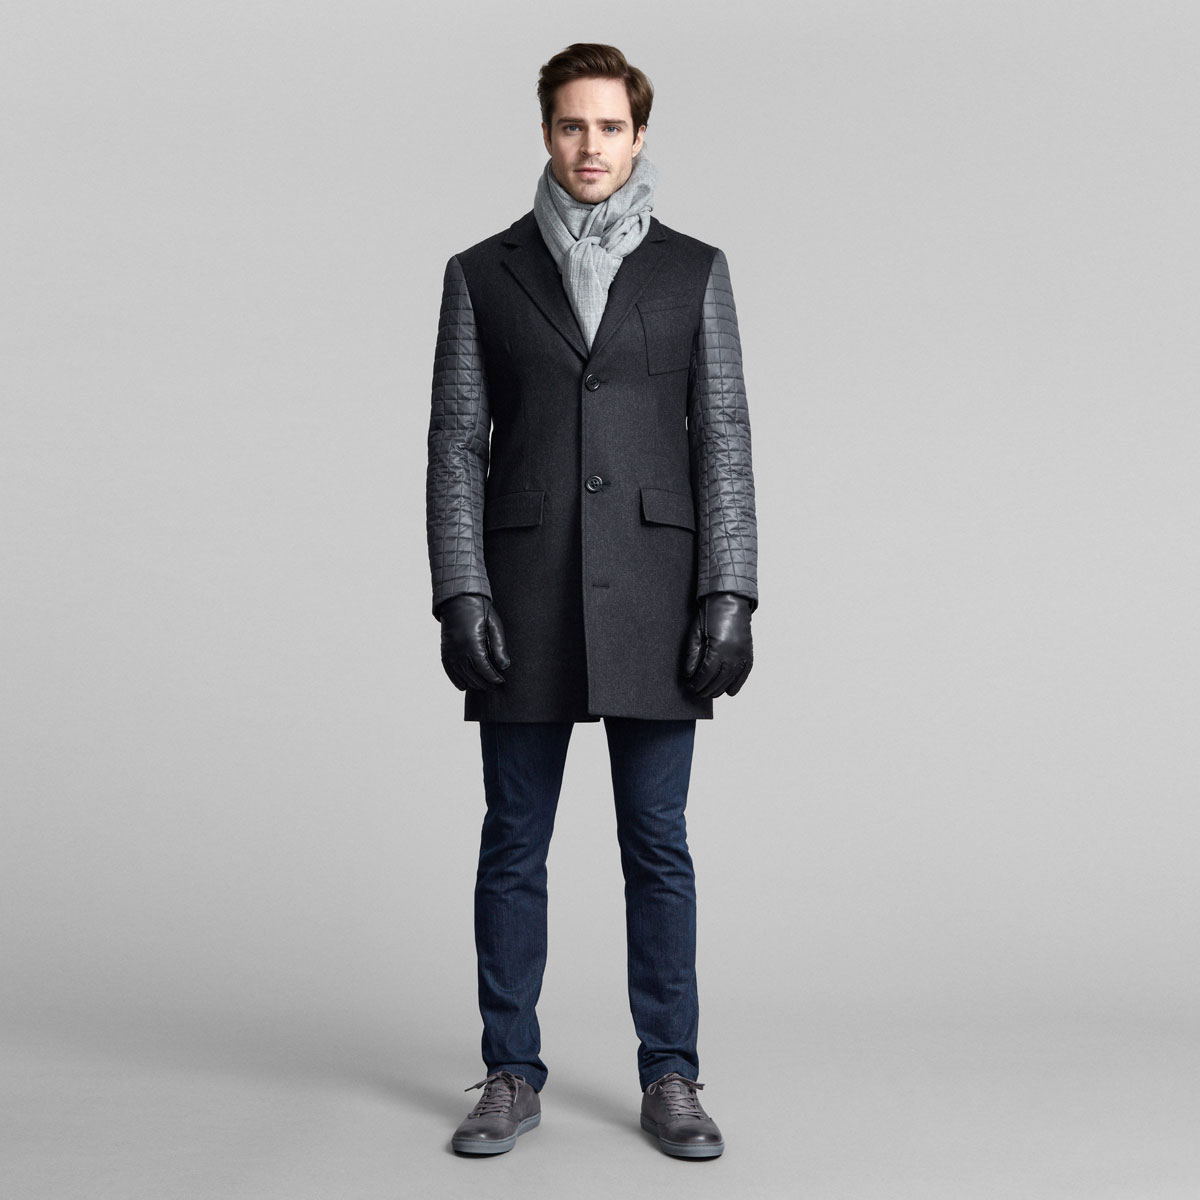 FRENN-Fall-Winter-2015-2016-Mens-Lookbook-1